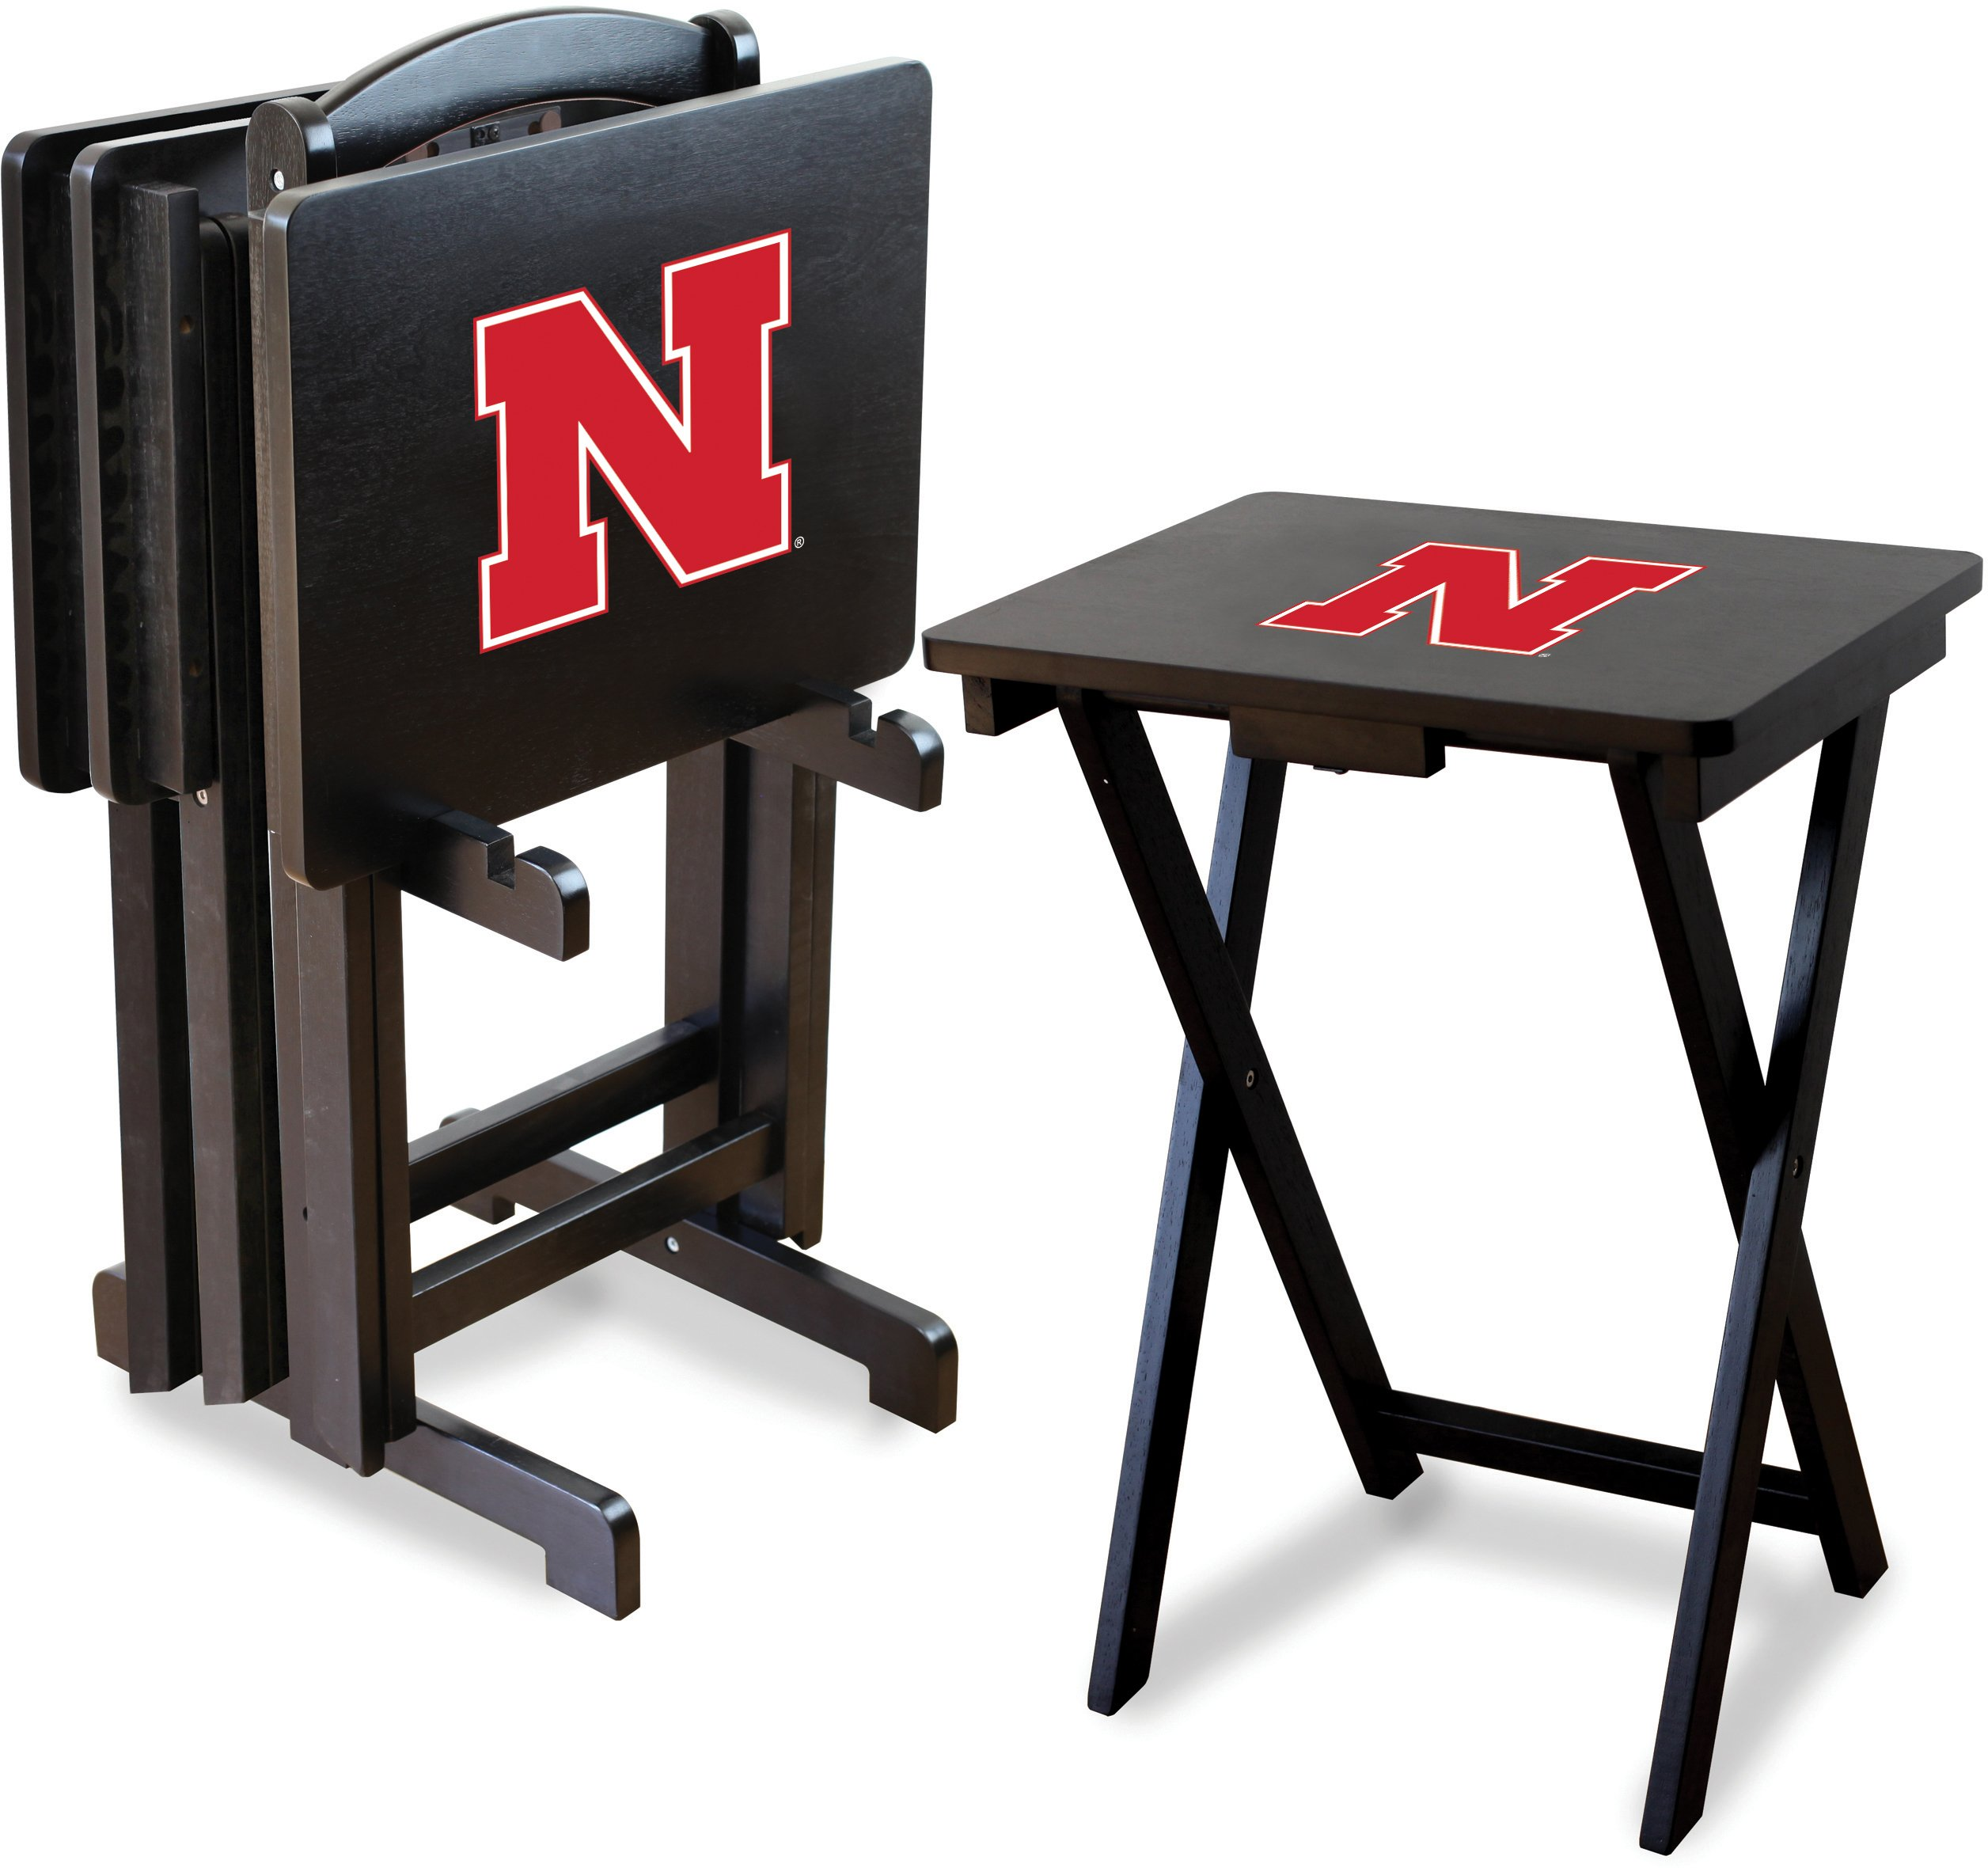 Imperial Officially Licensed NCAA Merchandise: Foldable Wood TV Tray Table Set with Stand, Nebraska Cornhuskers by Imperial